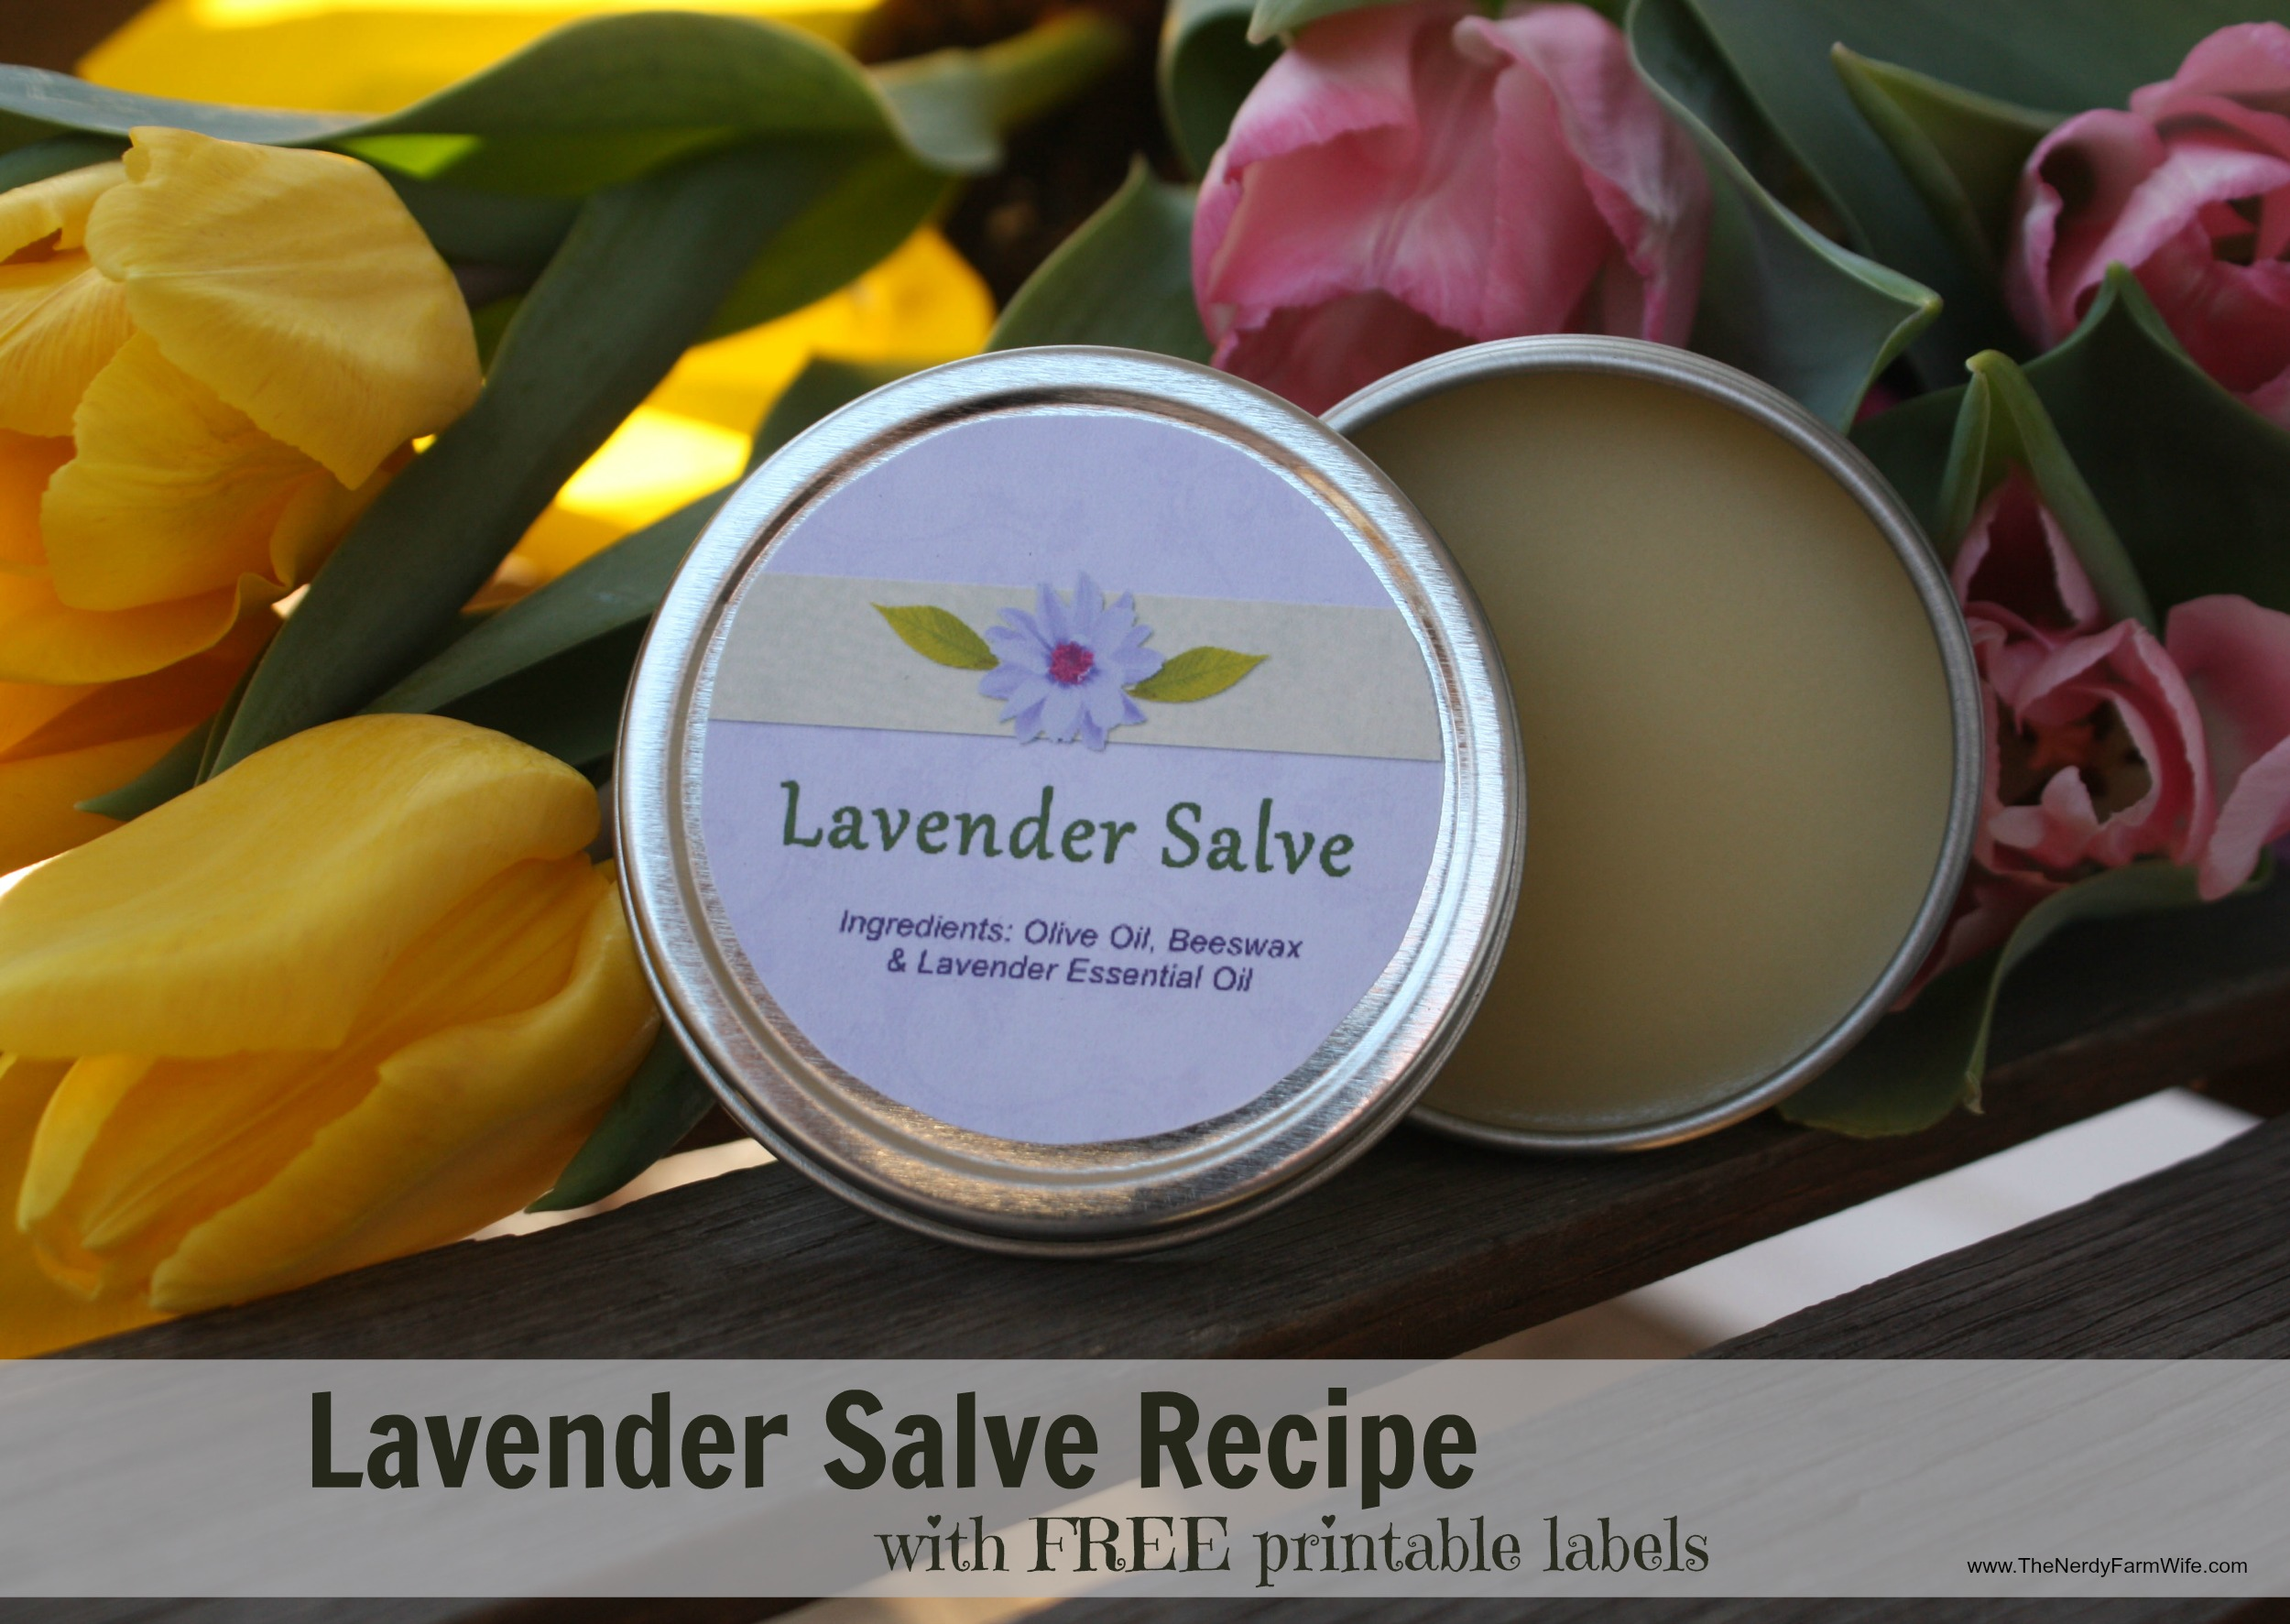 Lavender Salve Recipe with Printable Labels